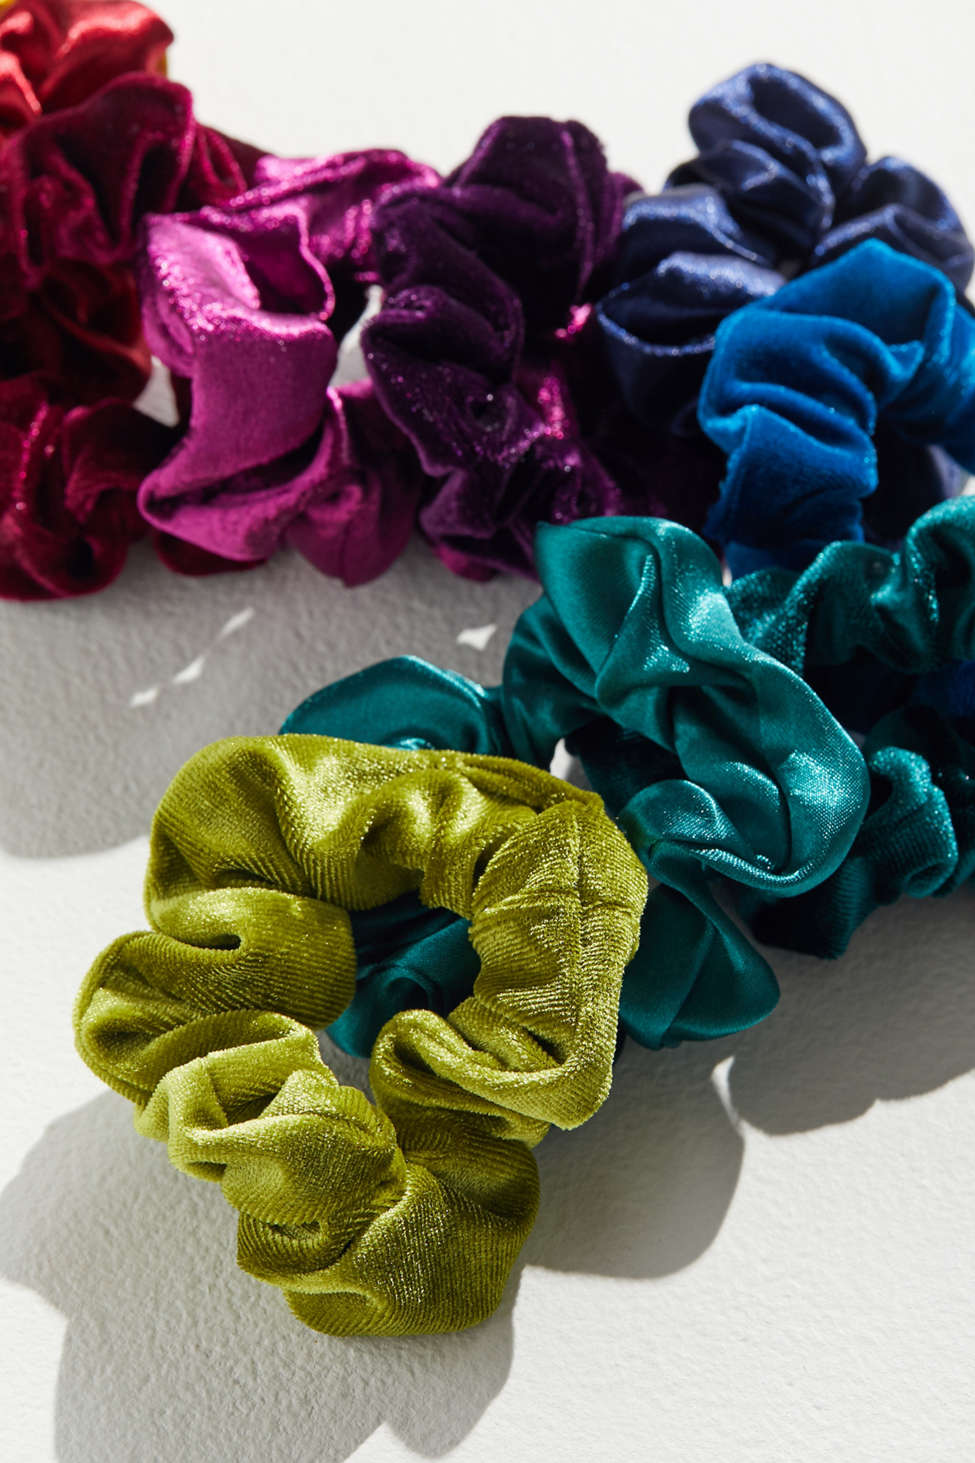 Perfect 10 Scrunchie Set by Urban Outfitters